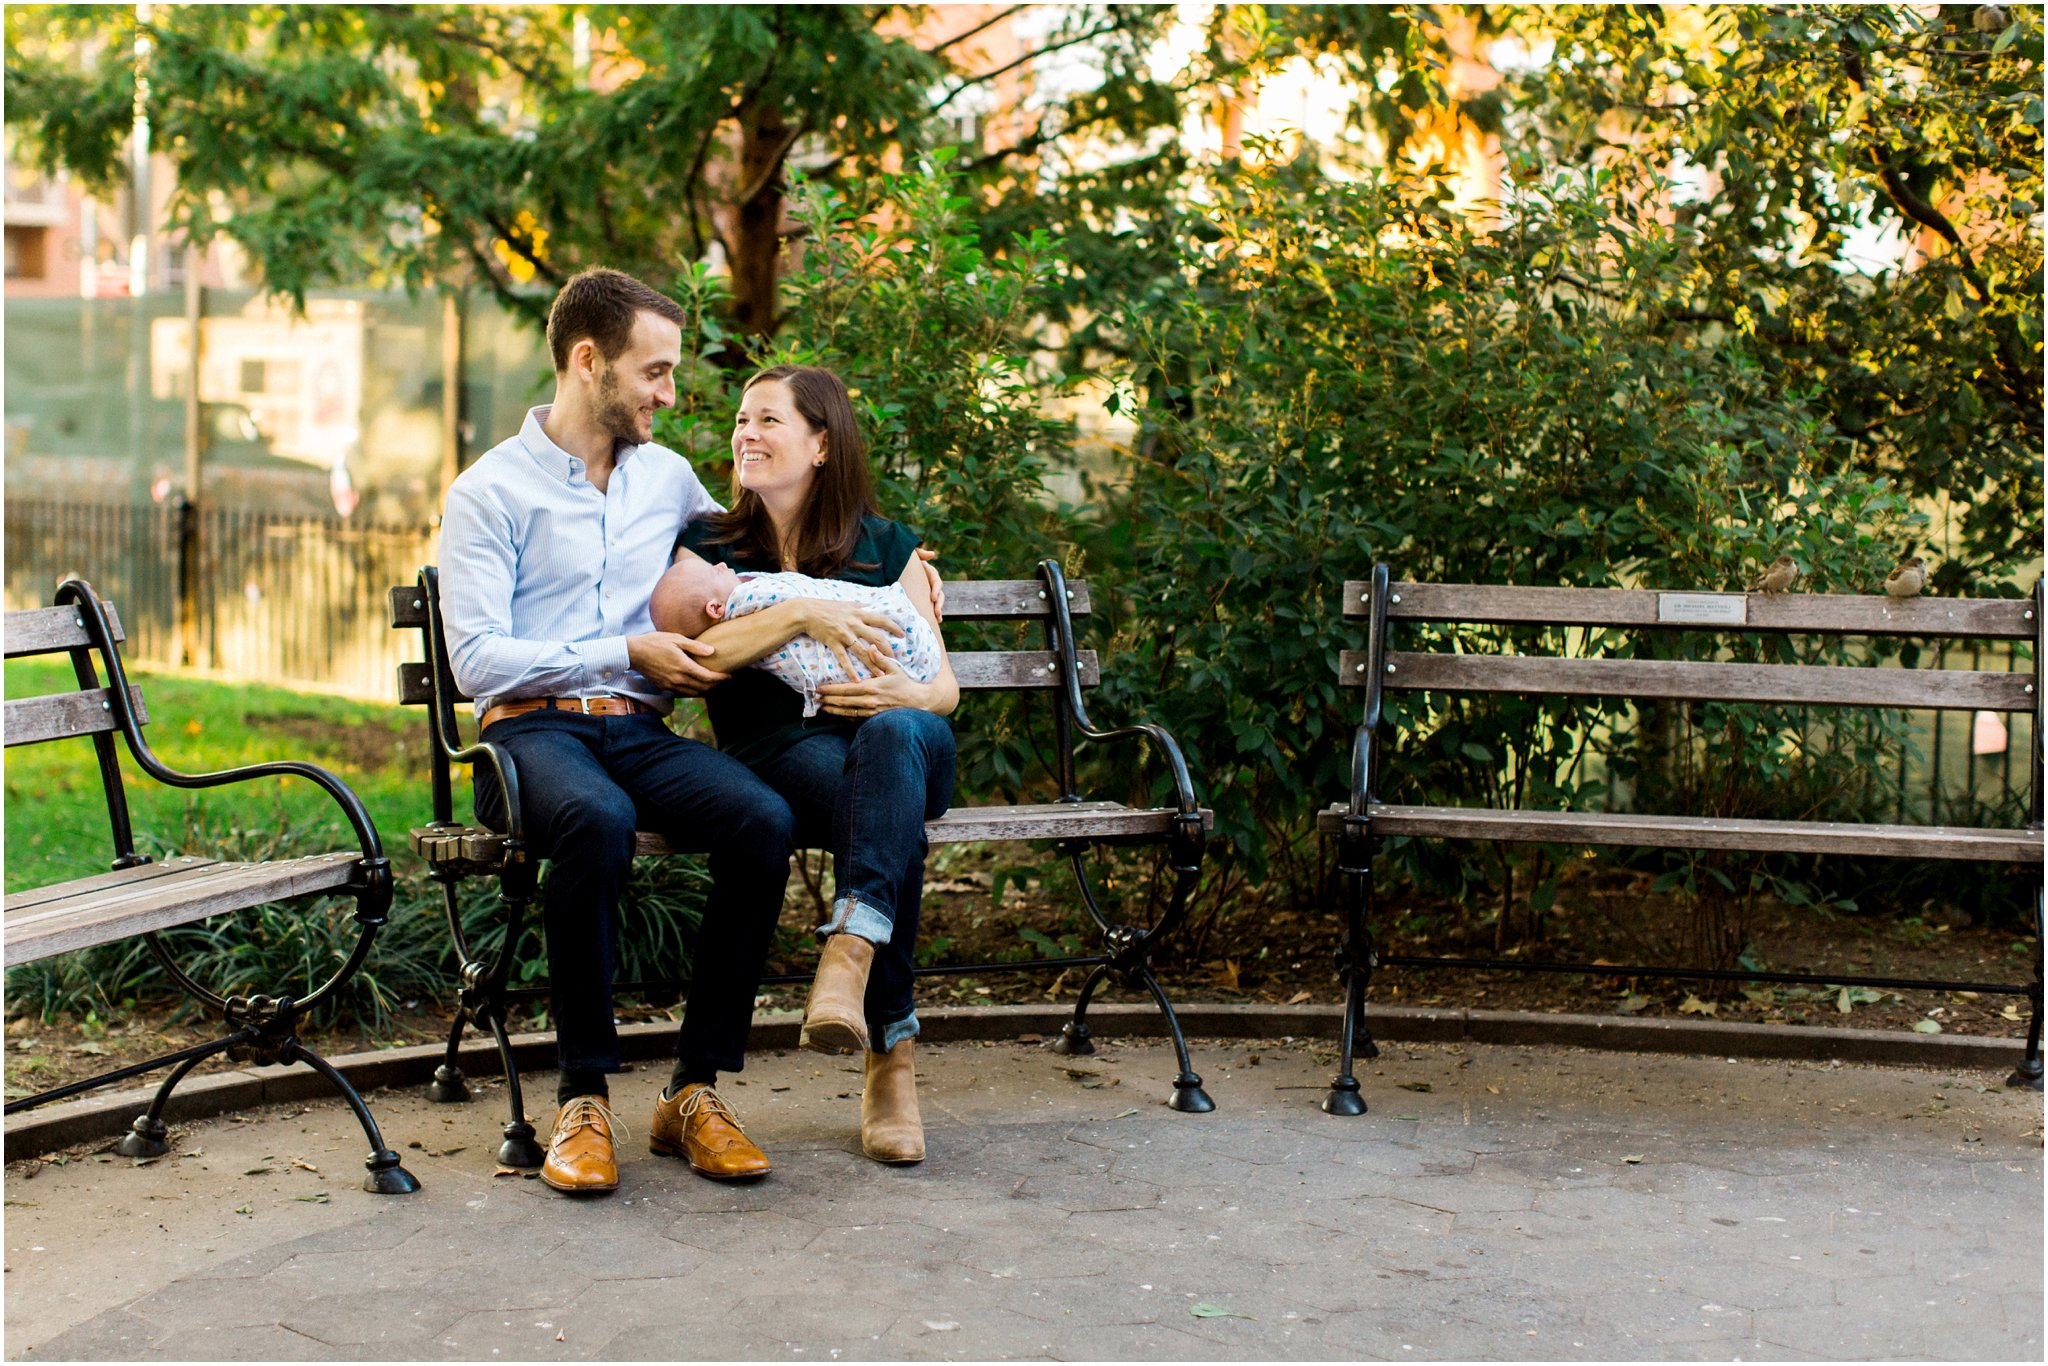 New york city newborn photos by charlottesville family photographer, amy nicole photography-017